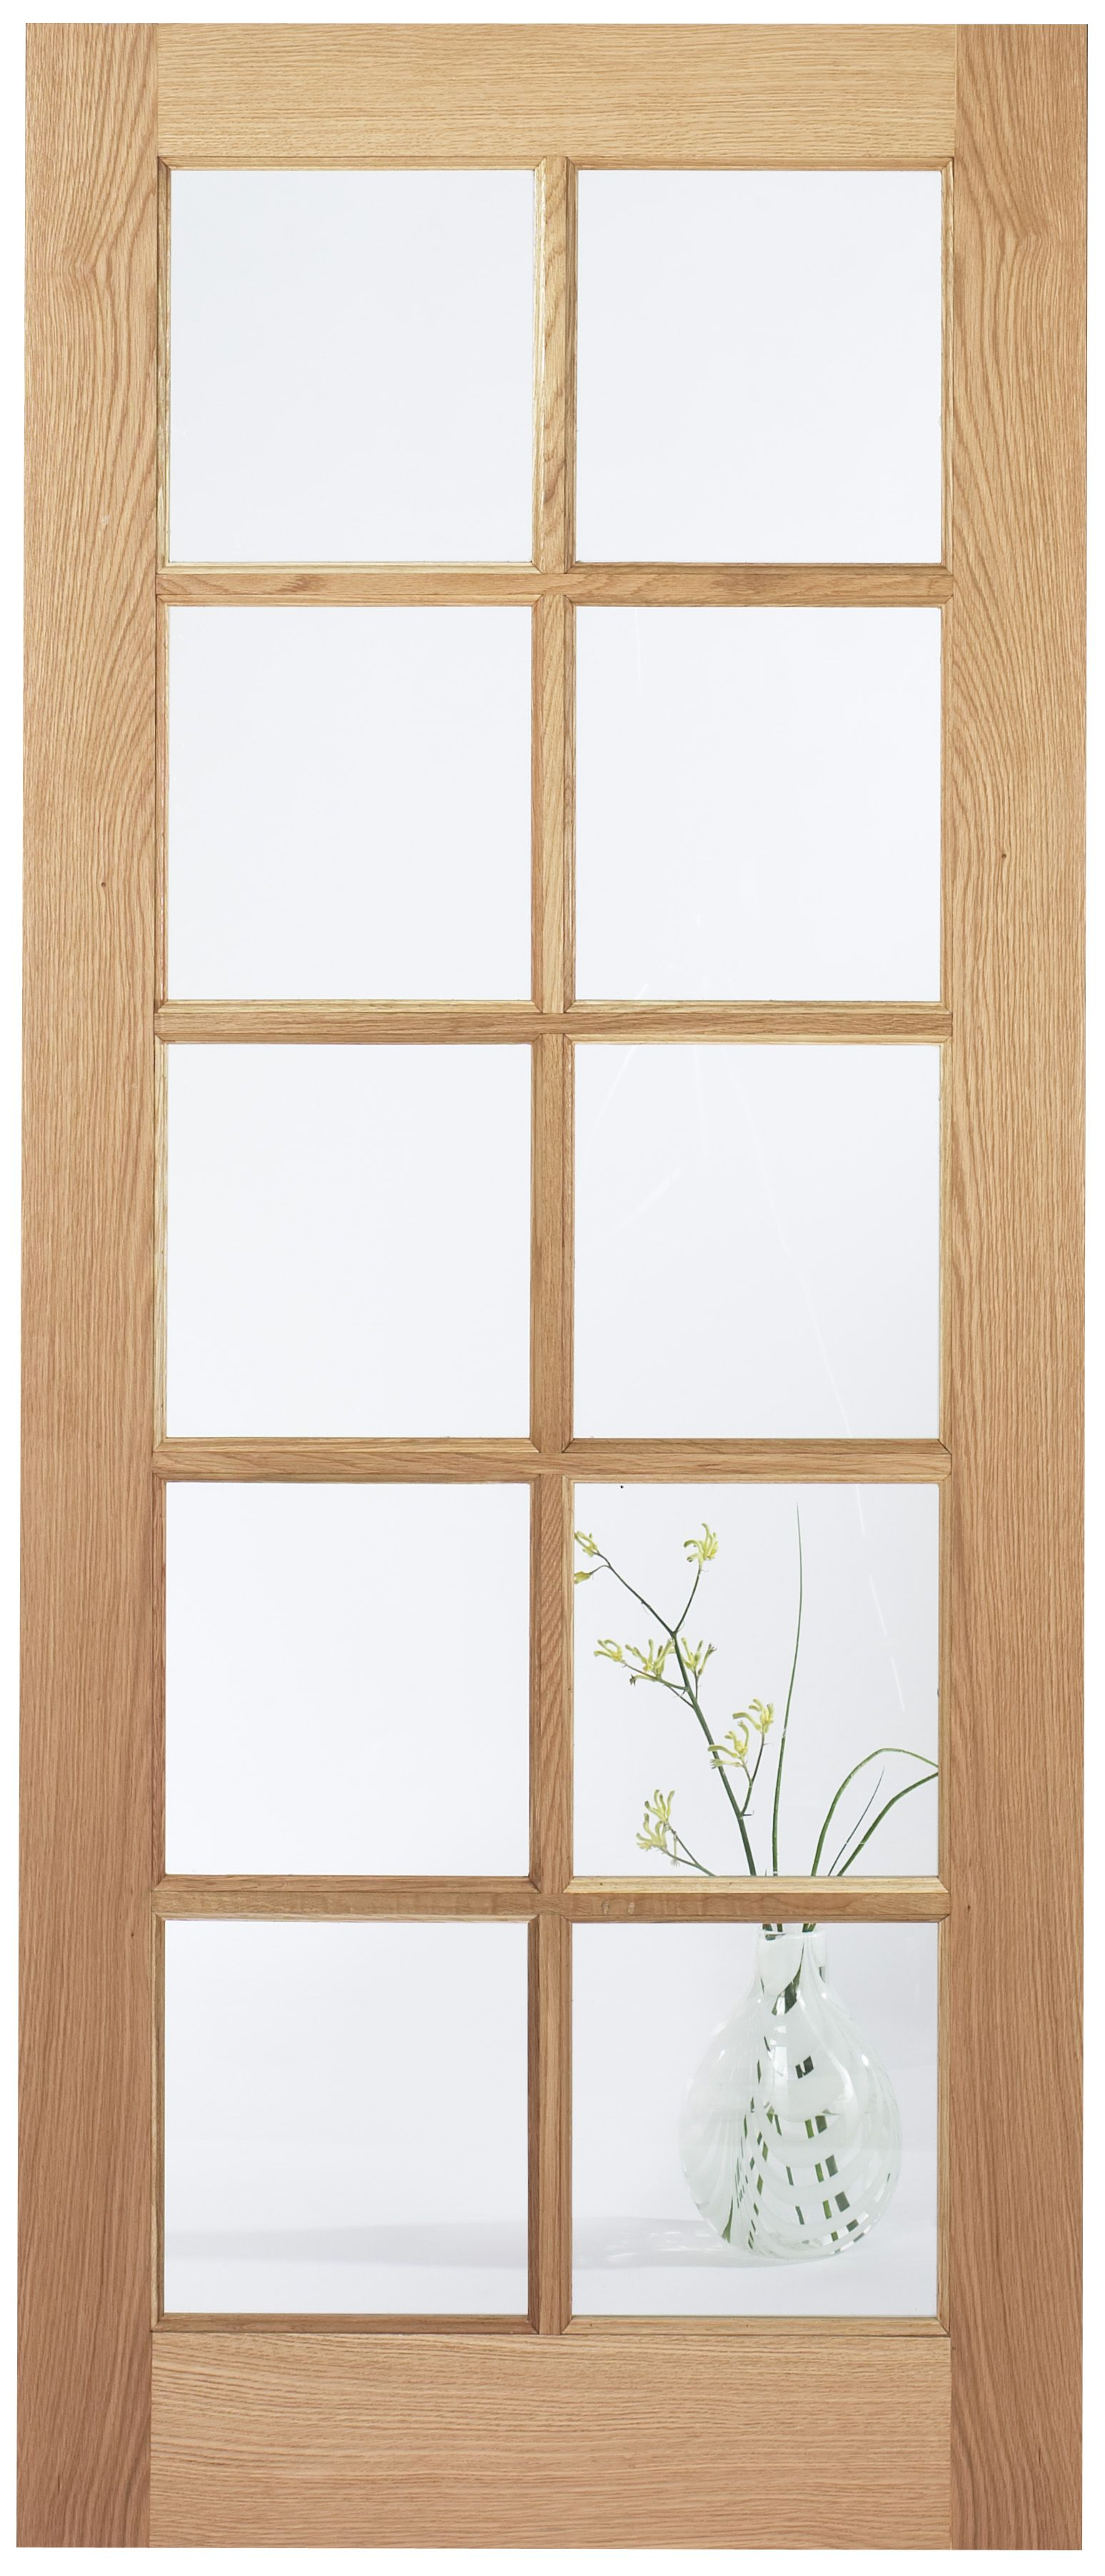 Internal Door Oak Sa10 Light Clear Flat Glass Untreated Lpd Buy 10 For Further Discount Internal Doors Oak Glazed Internal Doors Glass Panel Internal Doors